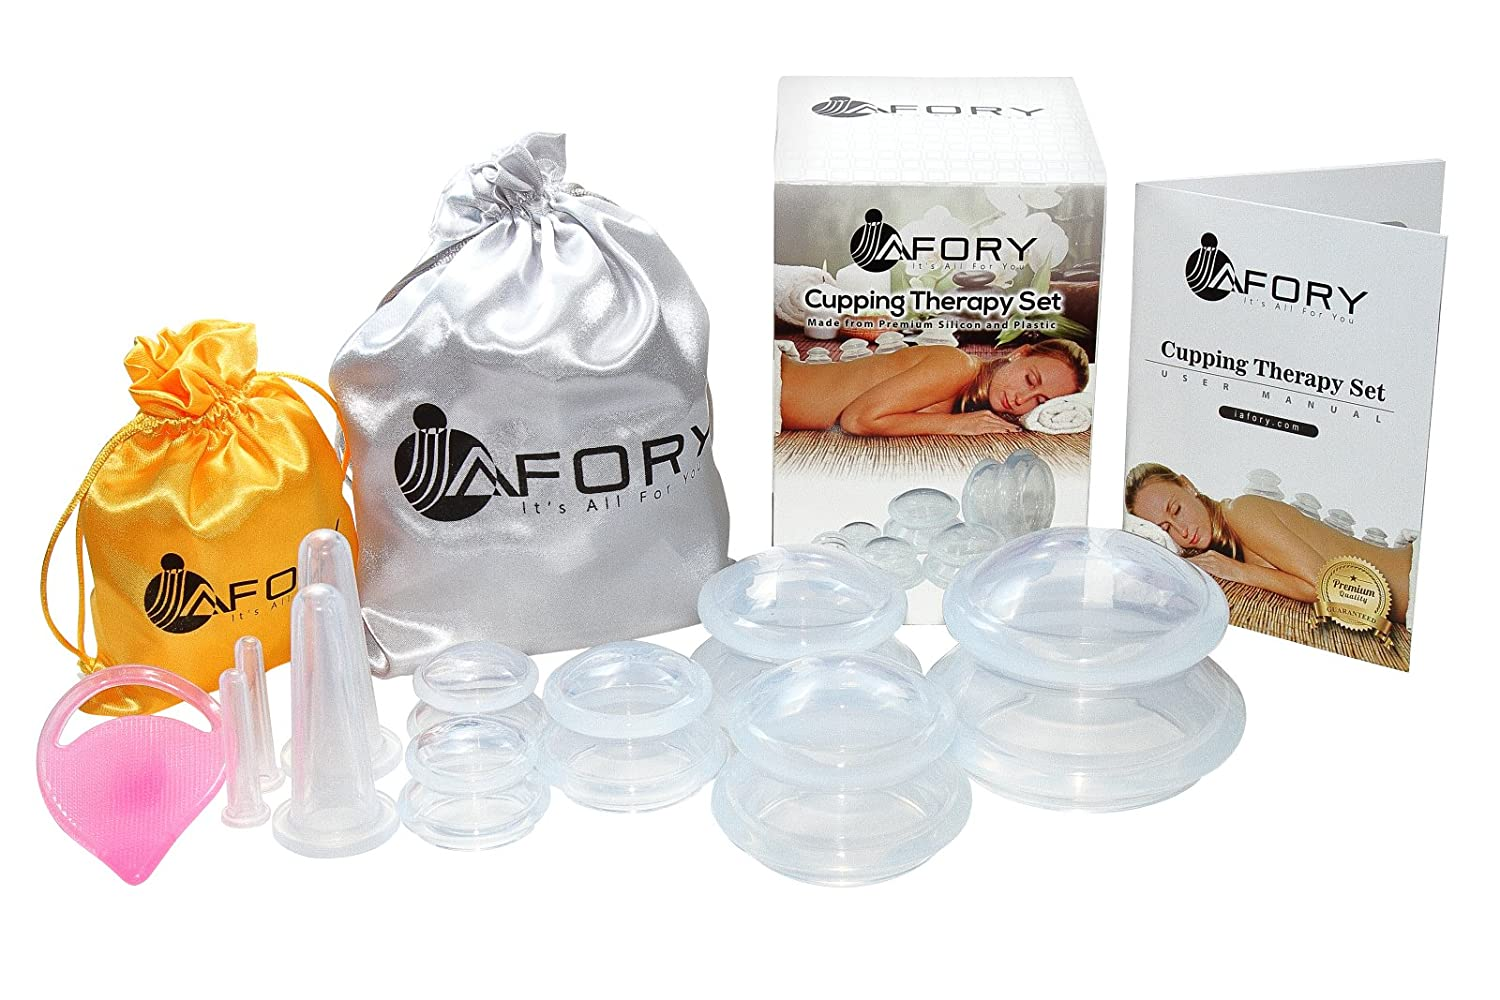 Premium Cupping Massage Therapy Set Best Acne Therapeutic System Kits